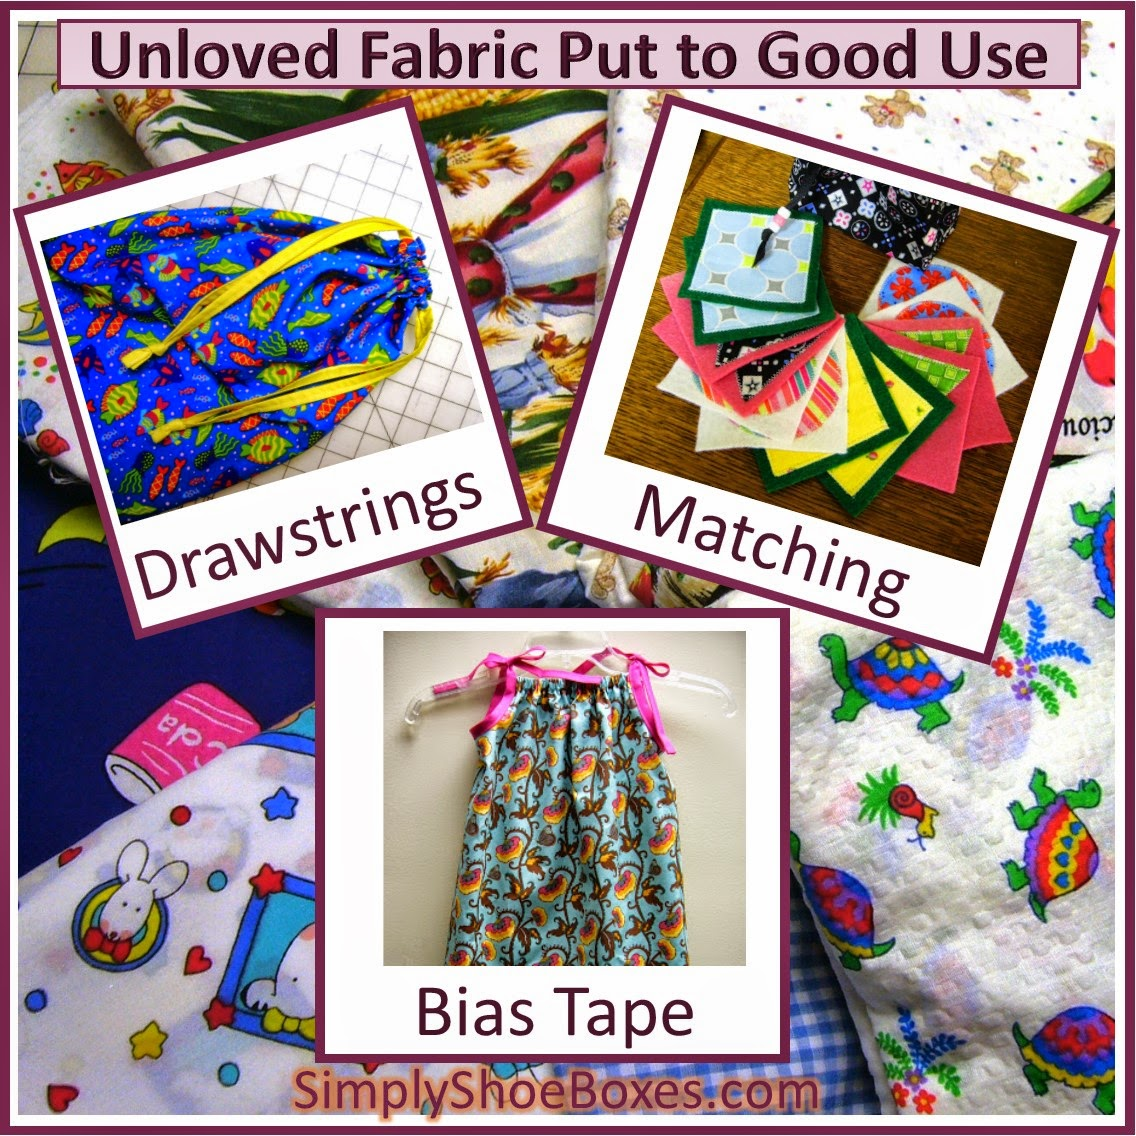 finding uses for purged fabric in other projects